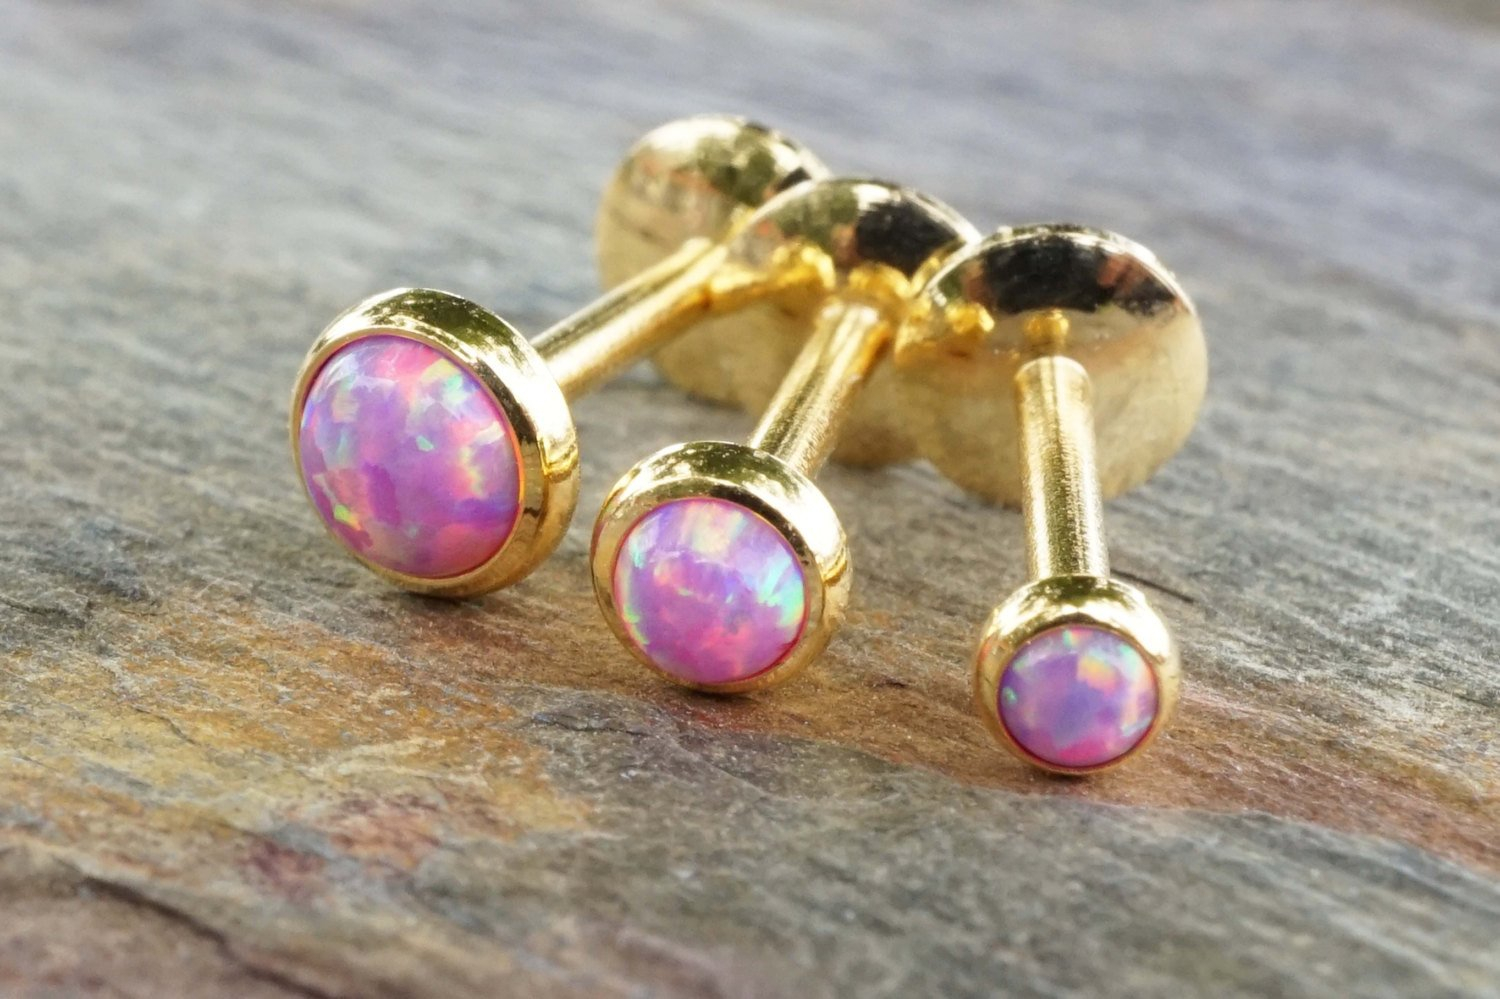 Image of Gold Pale Light Pink Fire Opal 16 Gauge Cartilage Earring Tragus Monroe Helix Piercing You Choose Stone Size